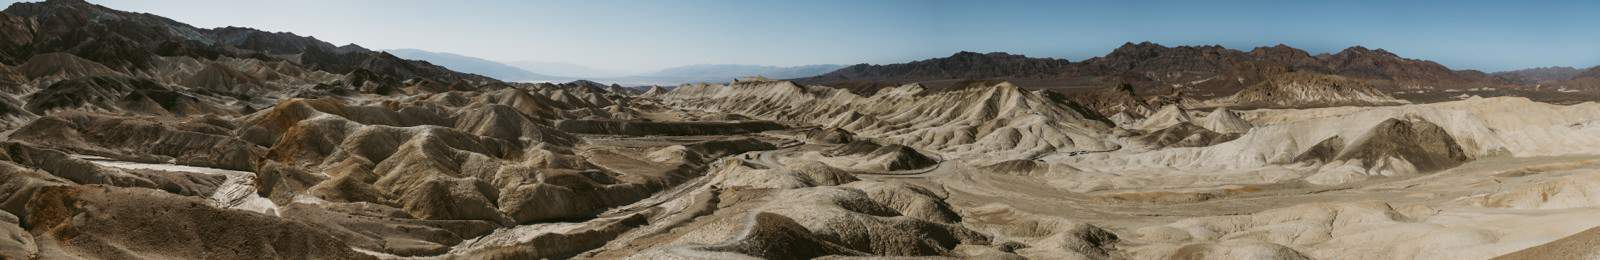 desert-photo-shoot-death-valley-roadtrip_0041